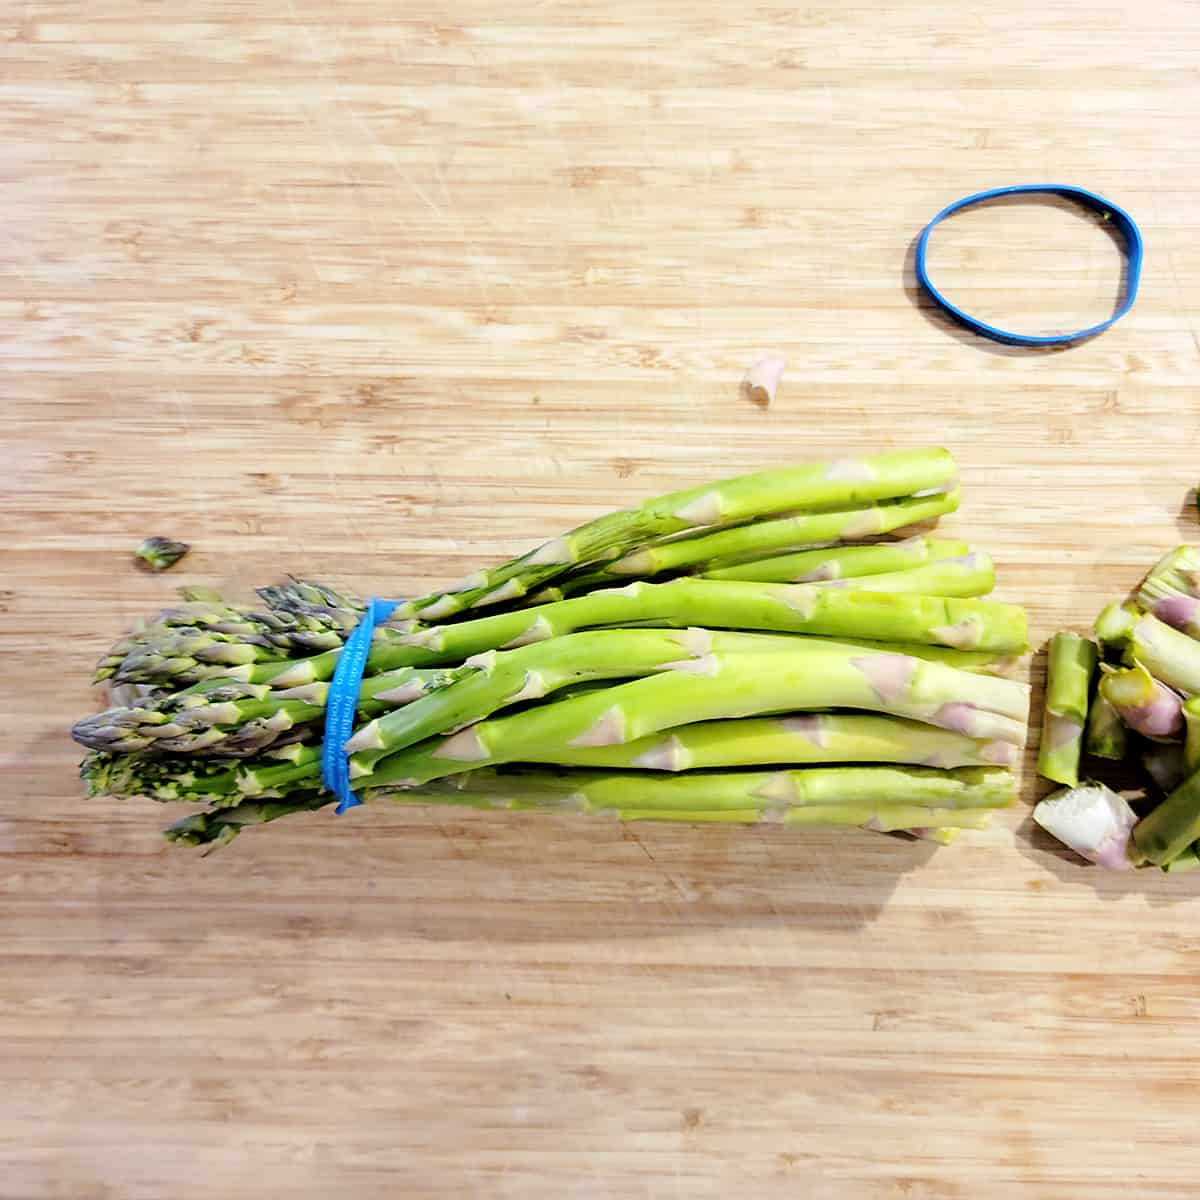 A bundle of fresh asparagus with the ends trimmed